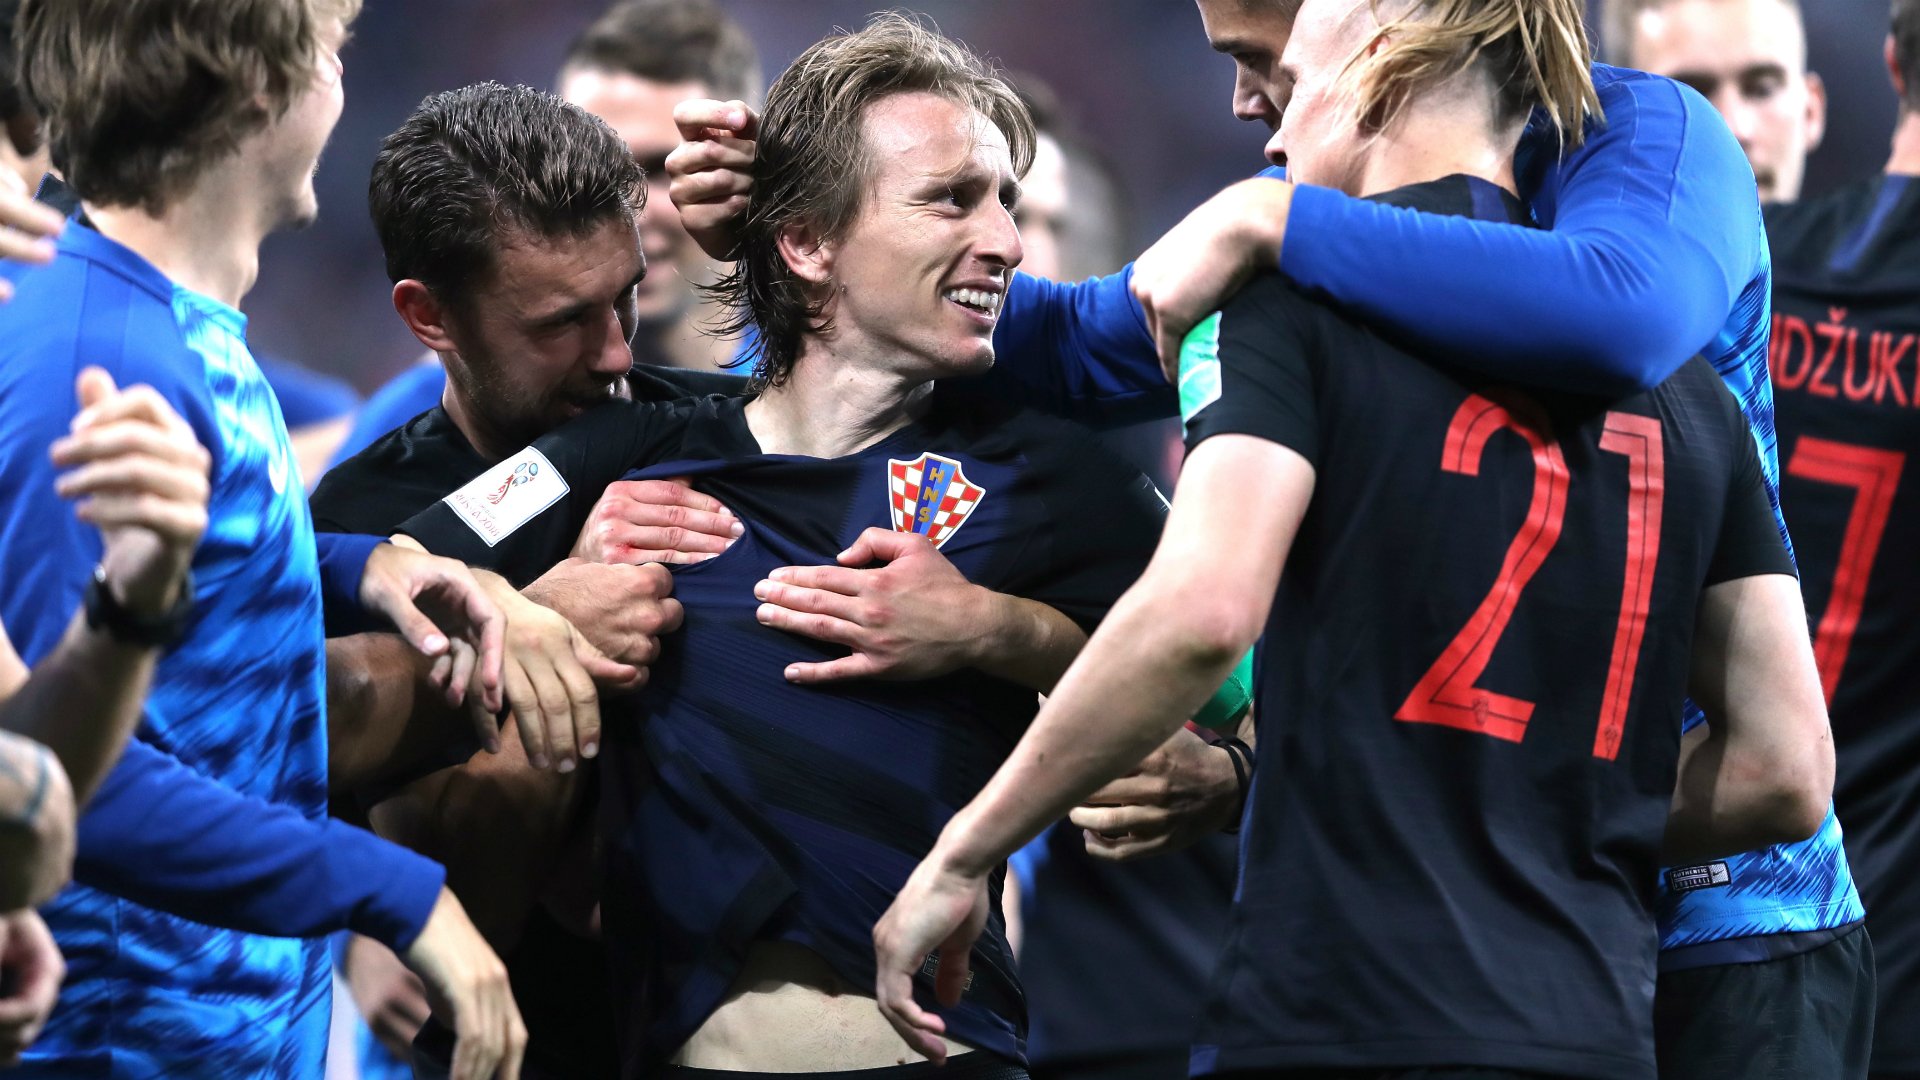 Luka Modric hopes Croatia can surpass legendary '98 team